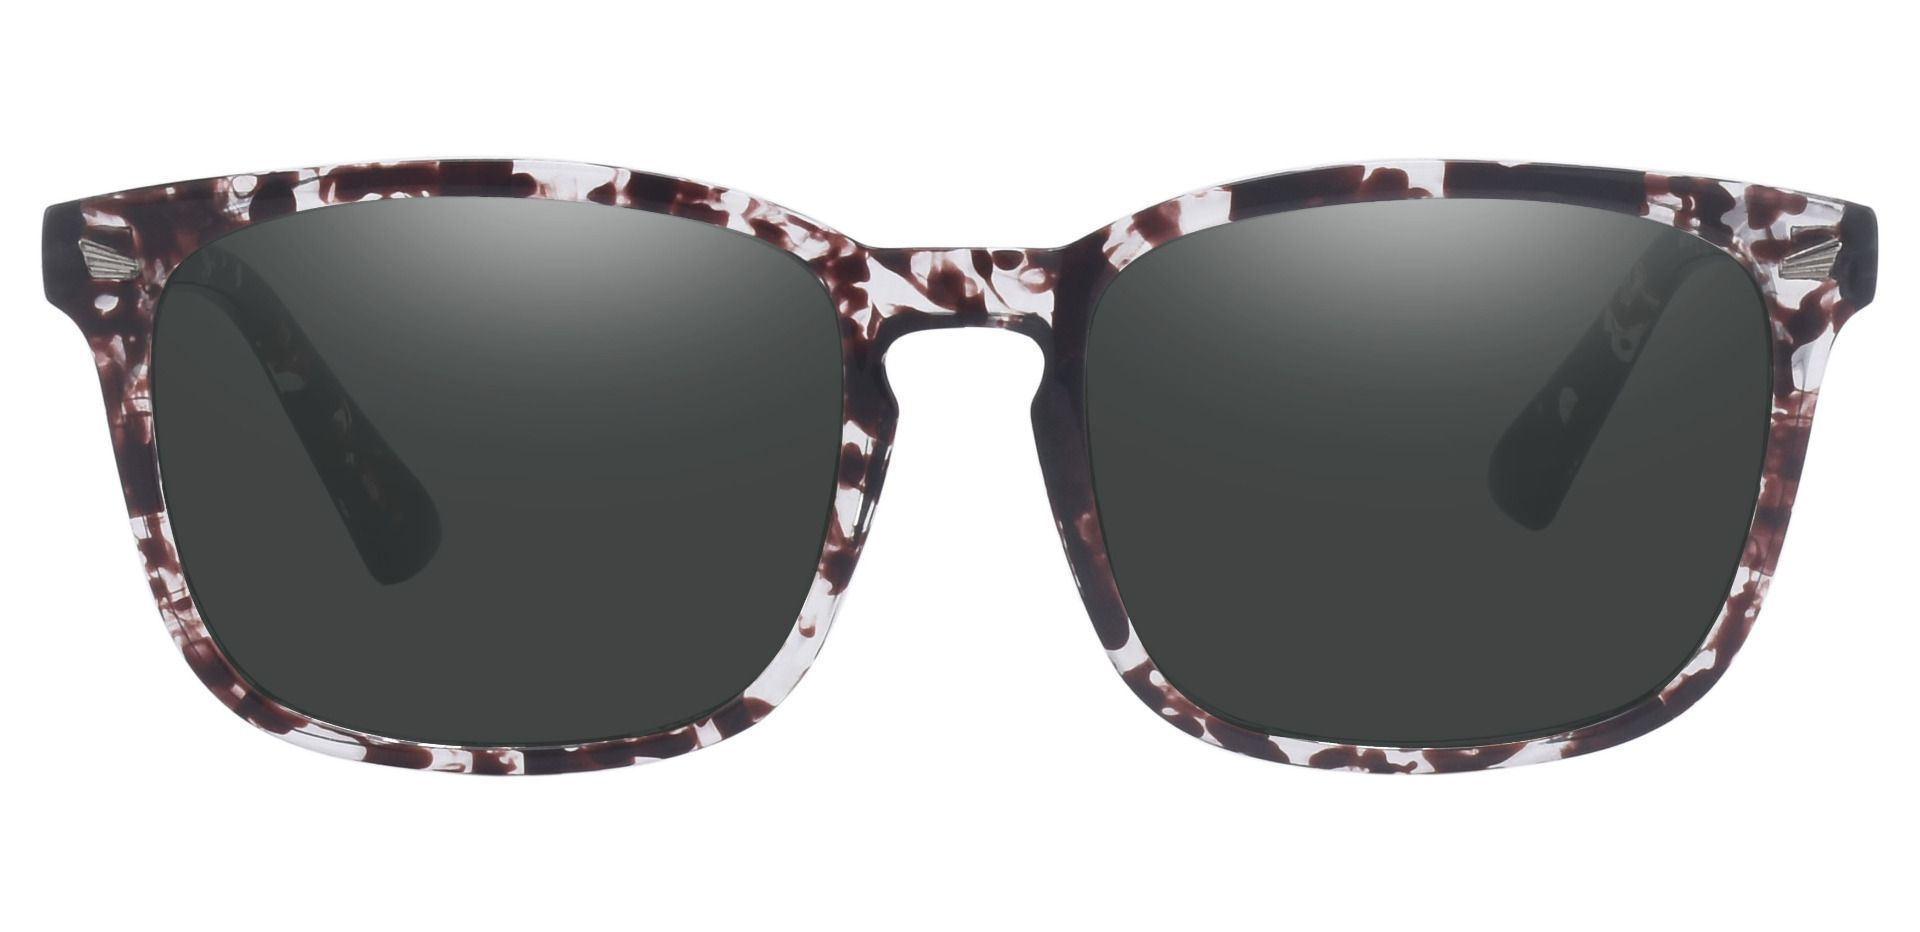 Zen Square Prescription Sunglasses - Multi Color Frame With Gray Lenses